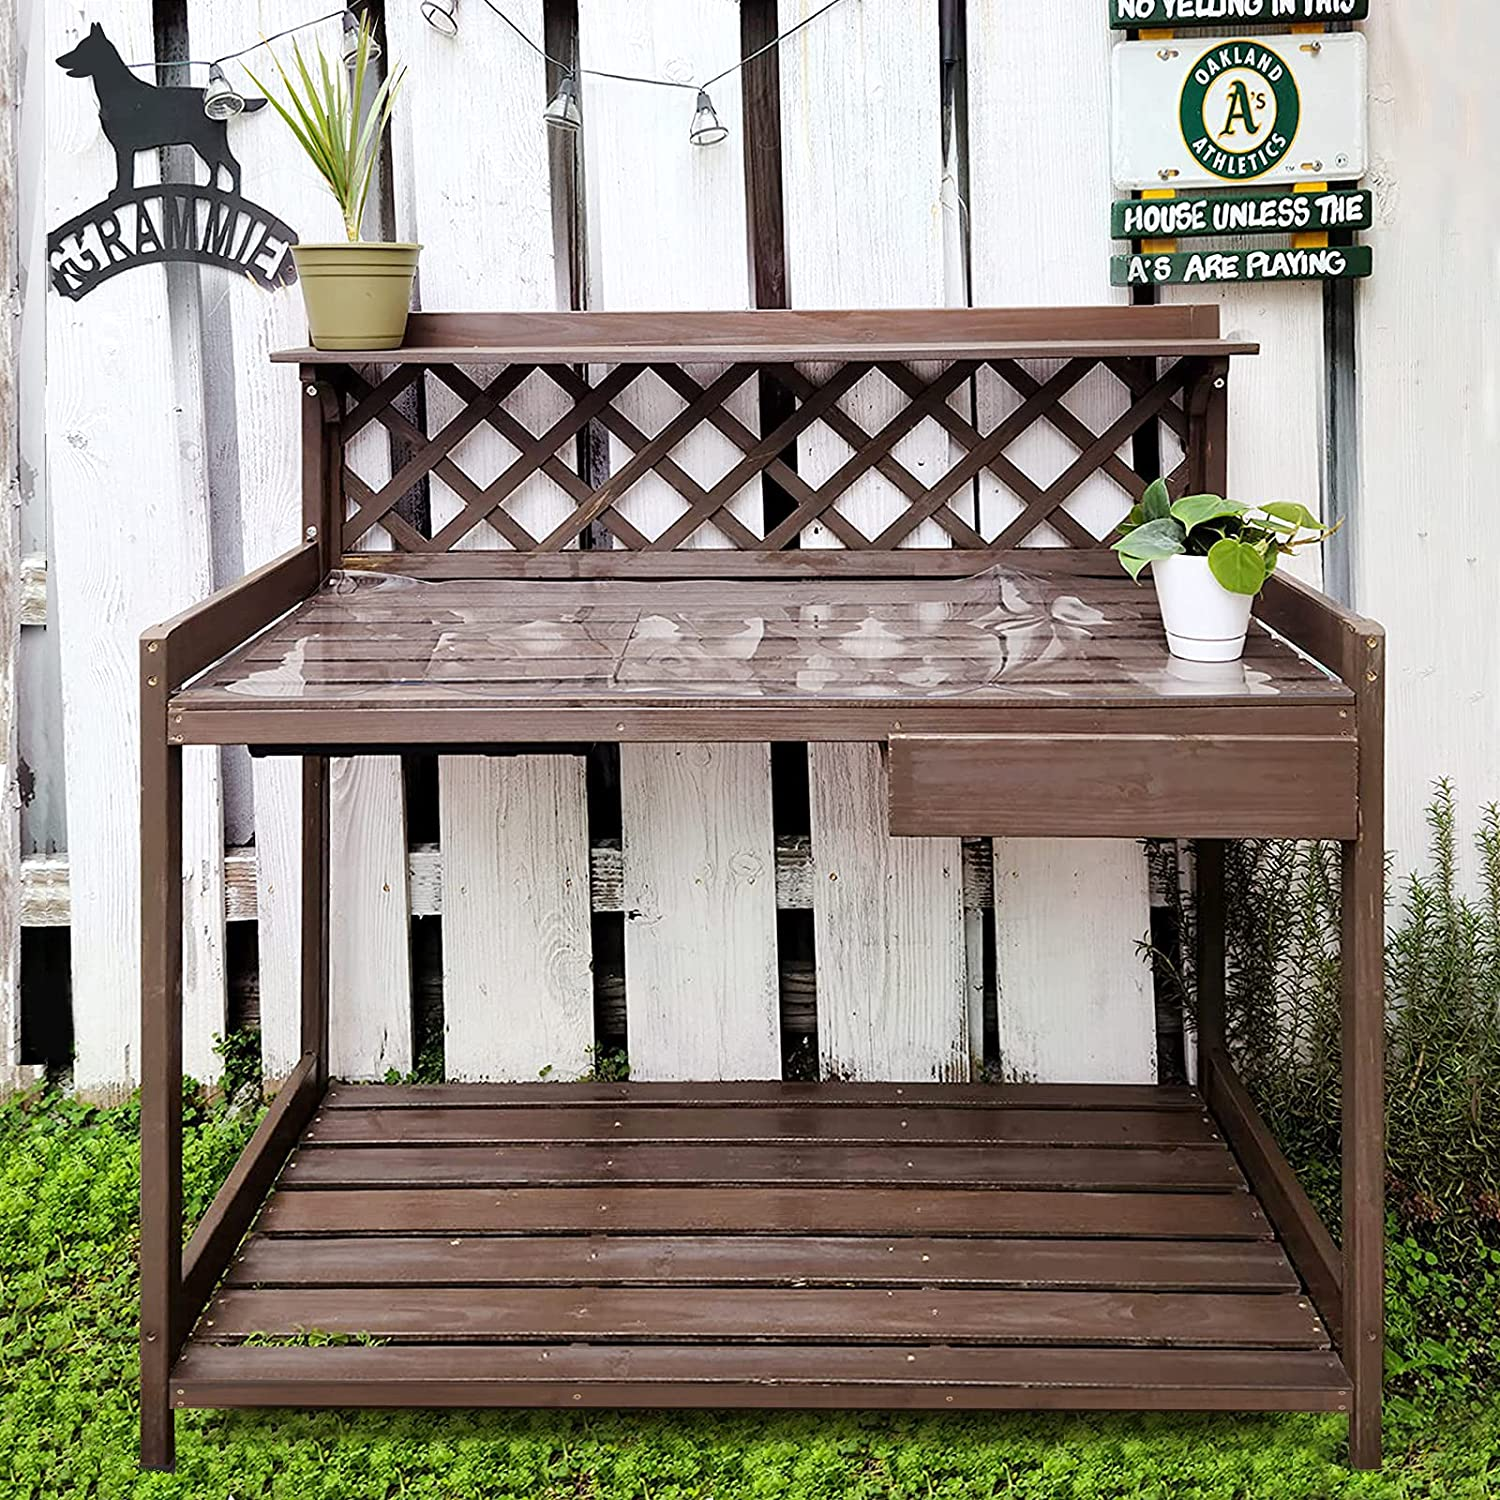 Outdoor Potting Bench Wooden Garden w Max 69% OFF Drawer Workstation Table Store